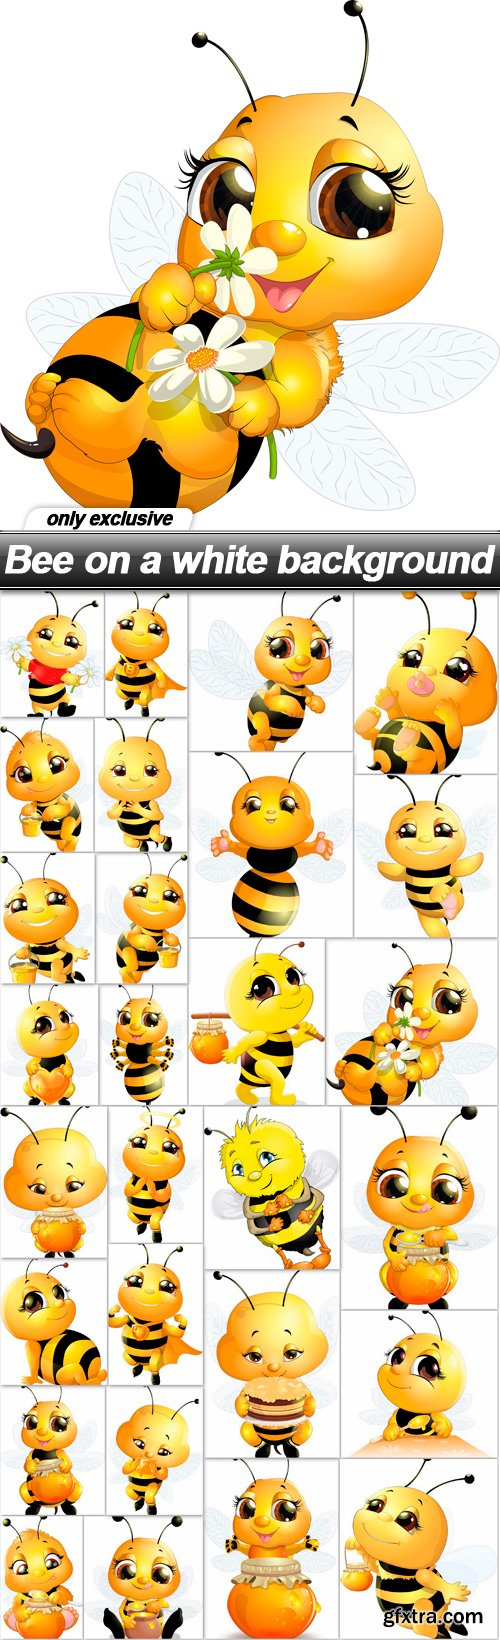 Bee on a white background - 28 EPS